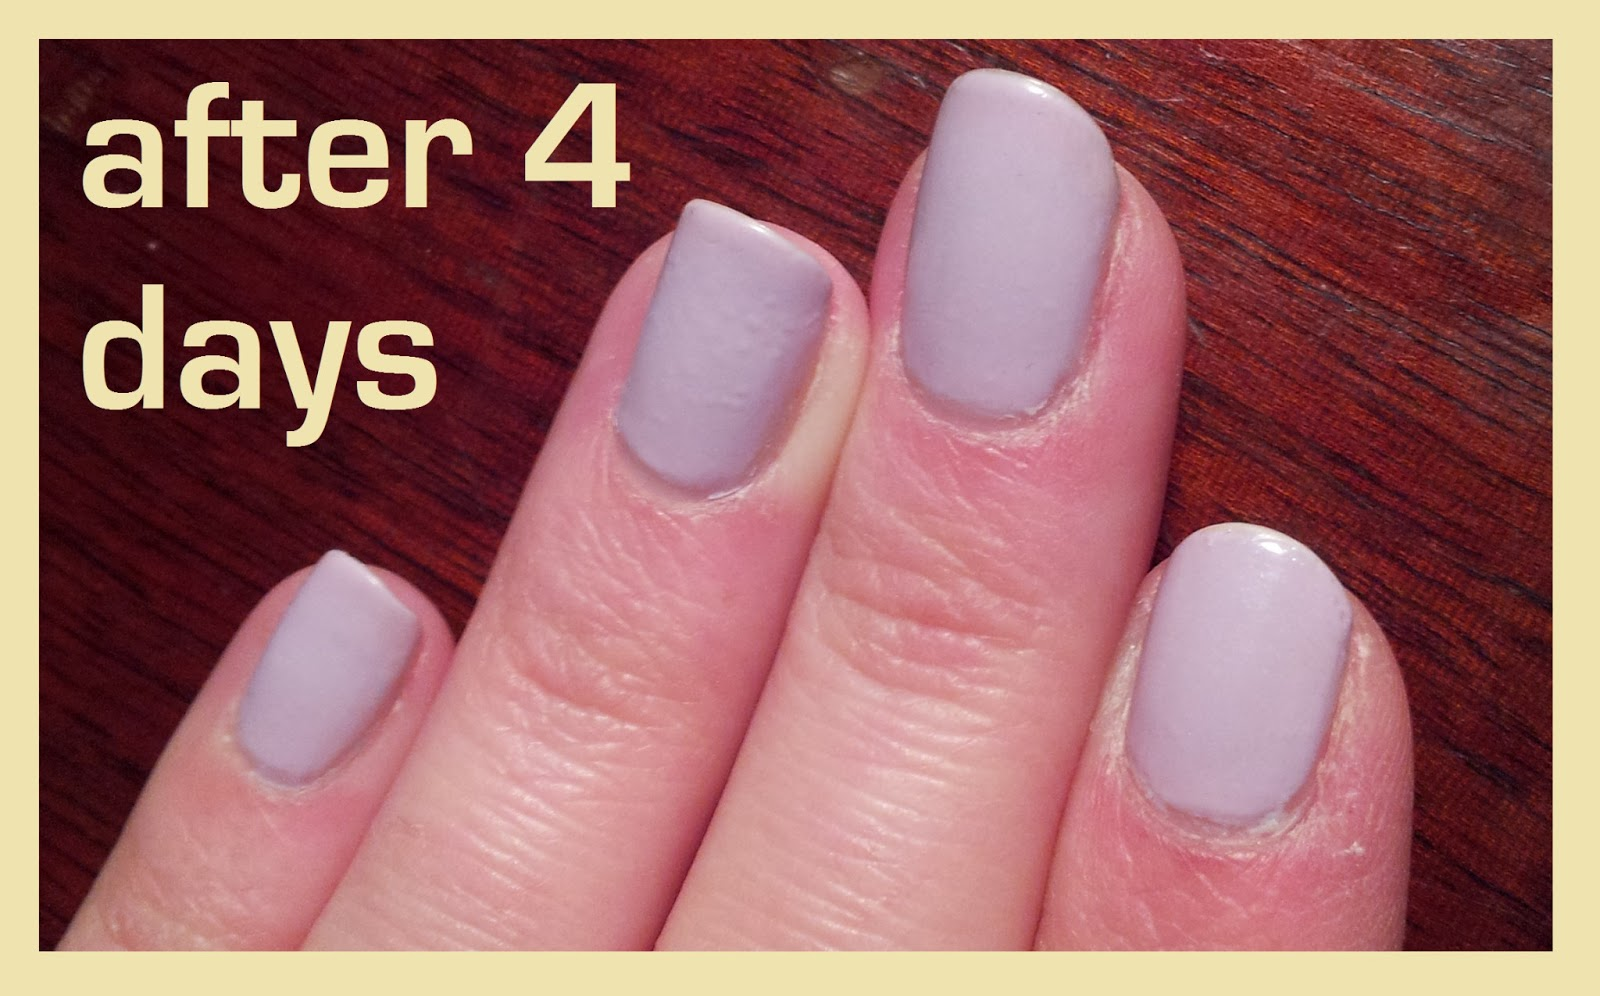 Lainamarie91 flower beauty naild it nail lacquer in np6 i i usually do 3 layers of any polish anyway so i dont find it to be an issue izmirmasajfo